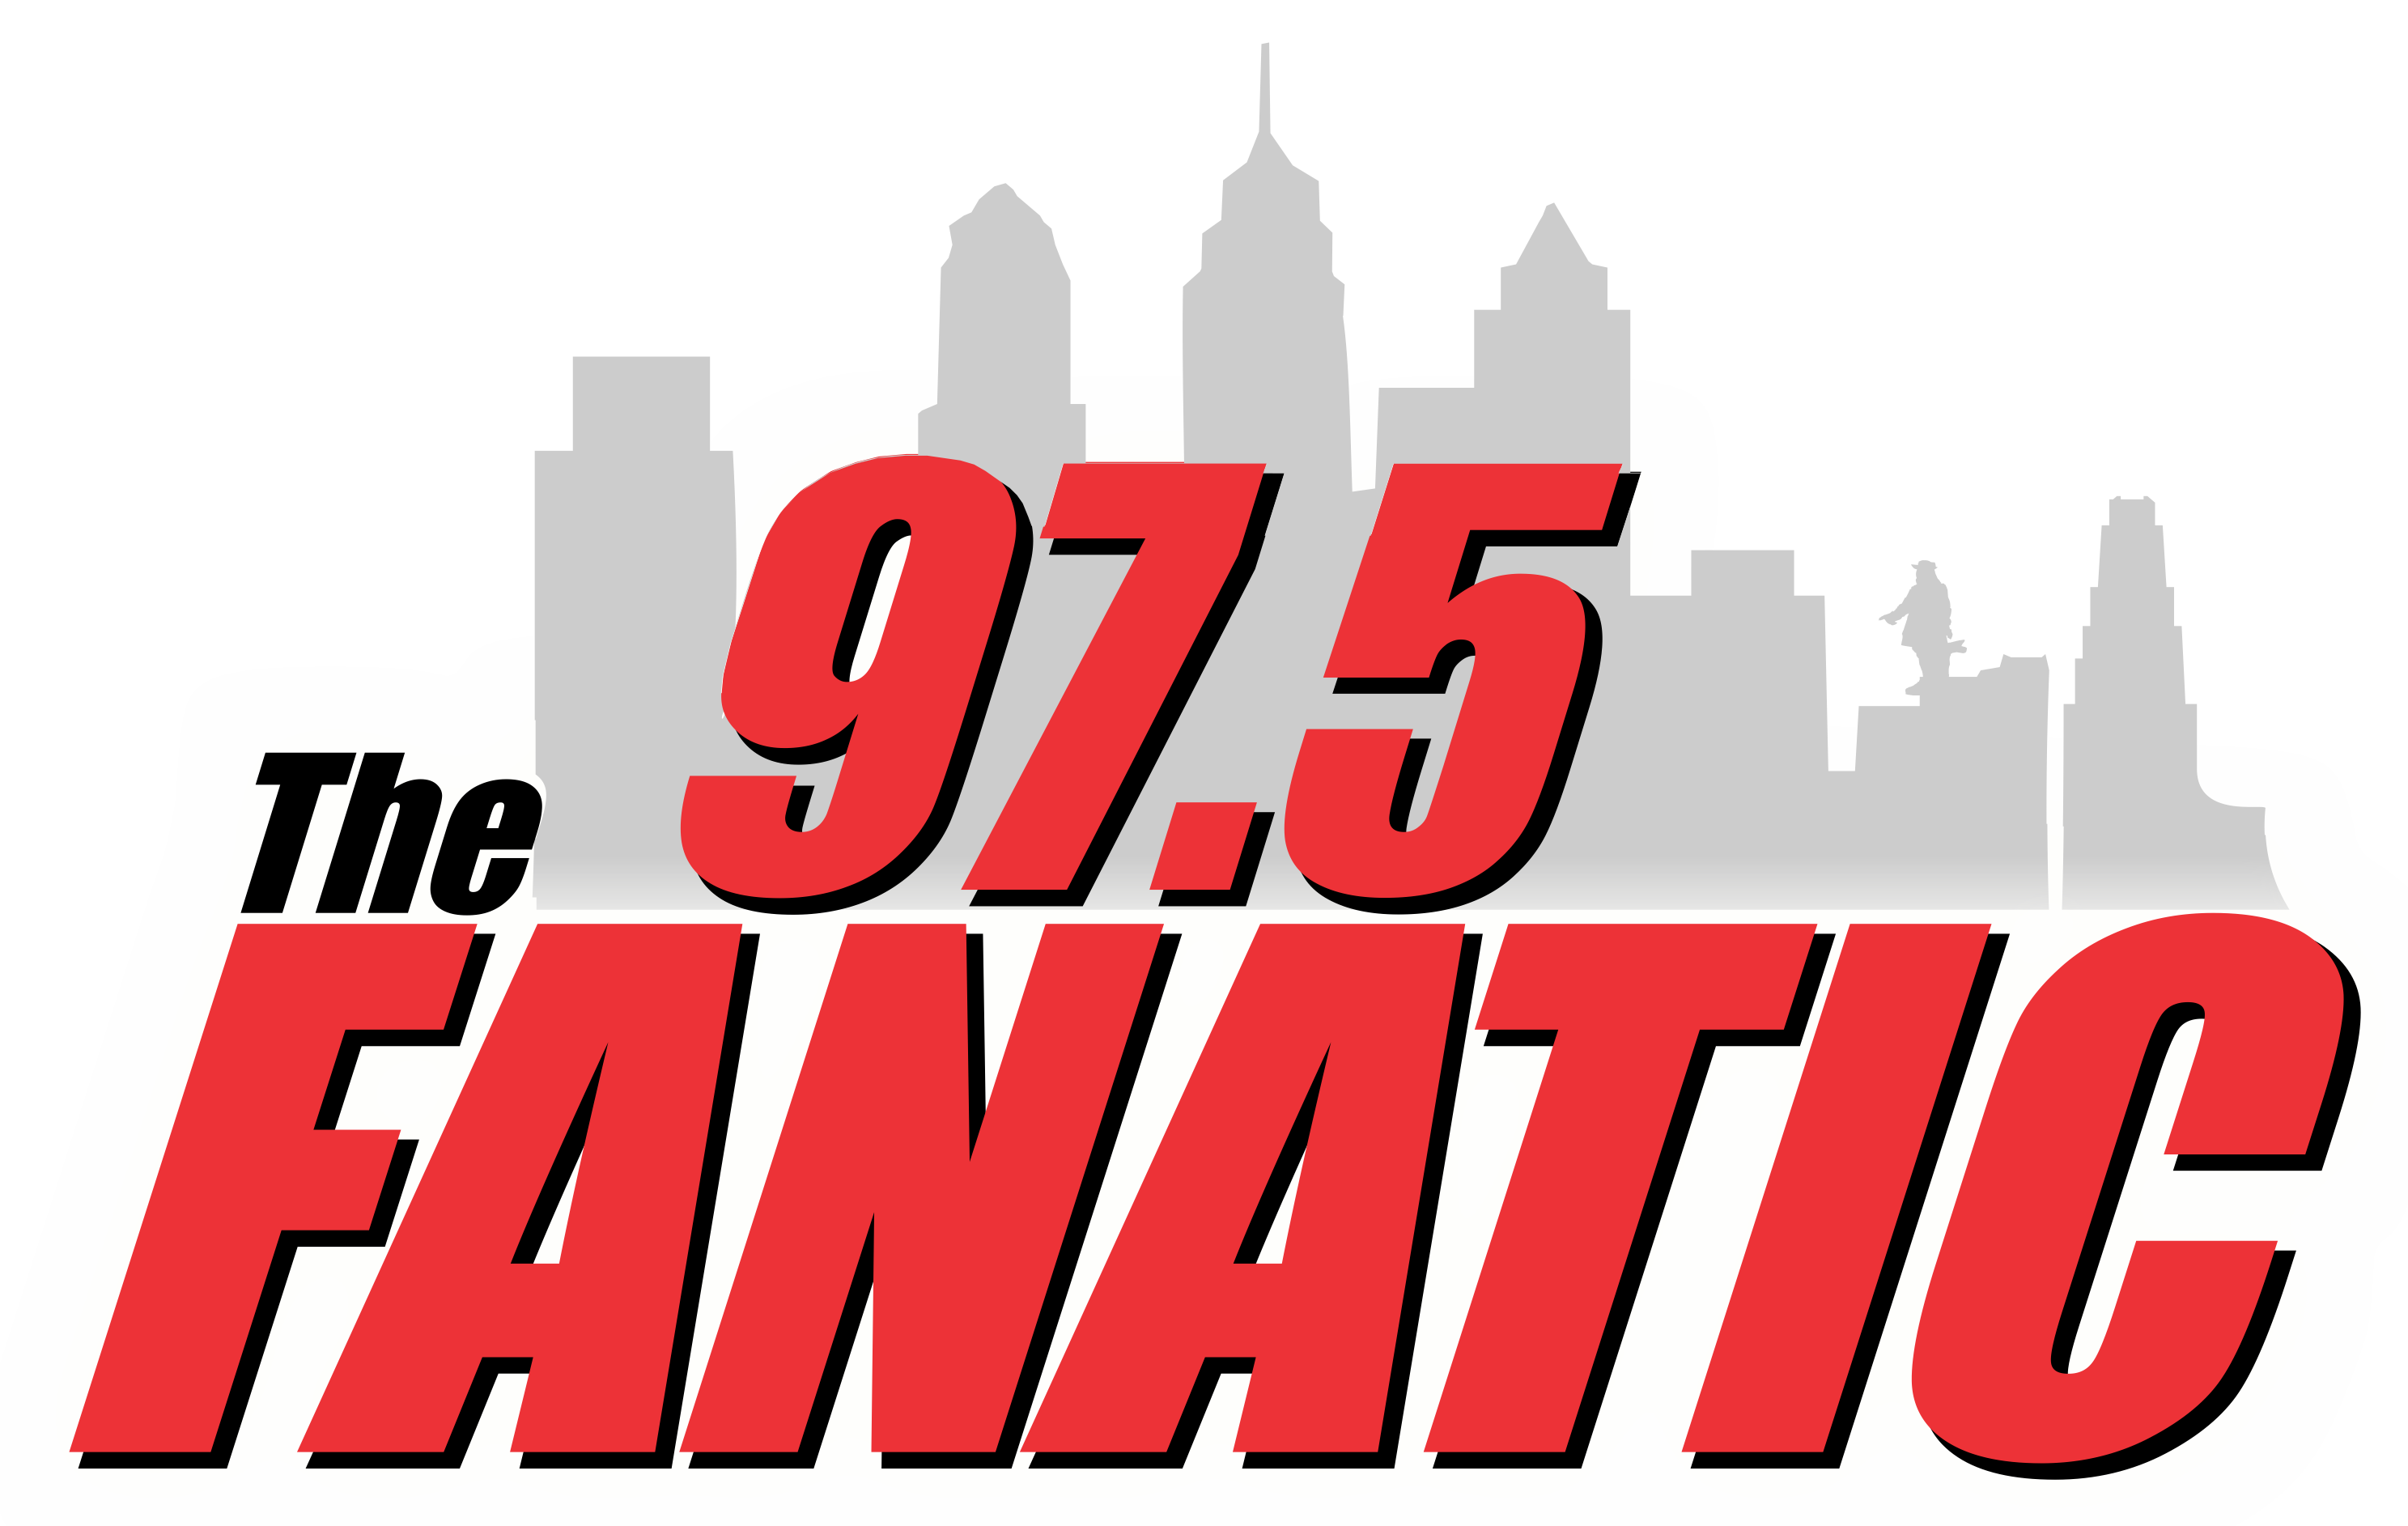 97.5 The Fanatic | 97.5 The Fanatic